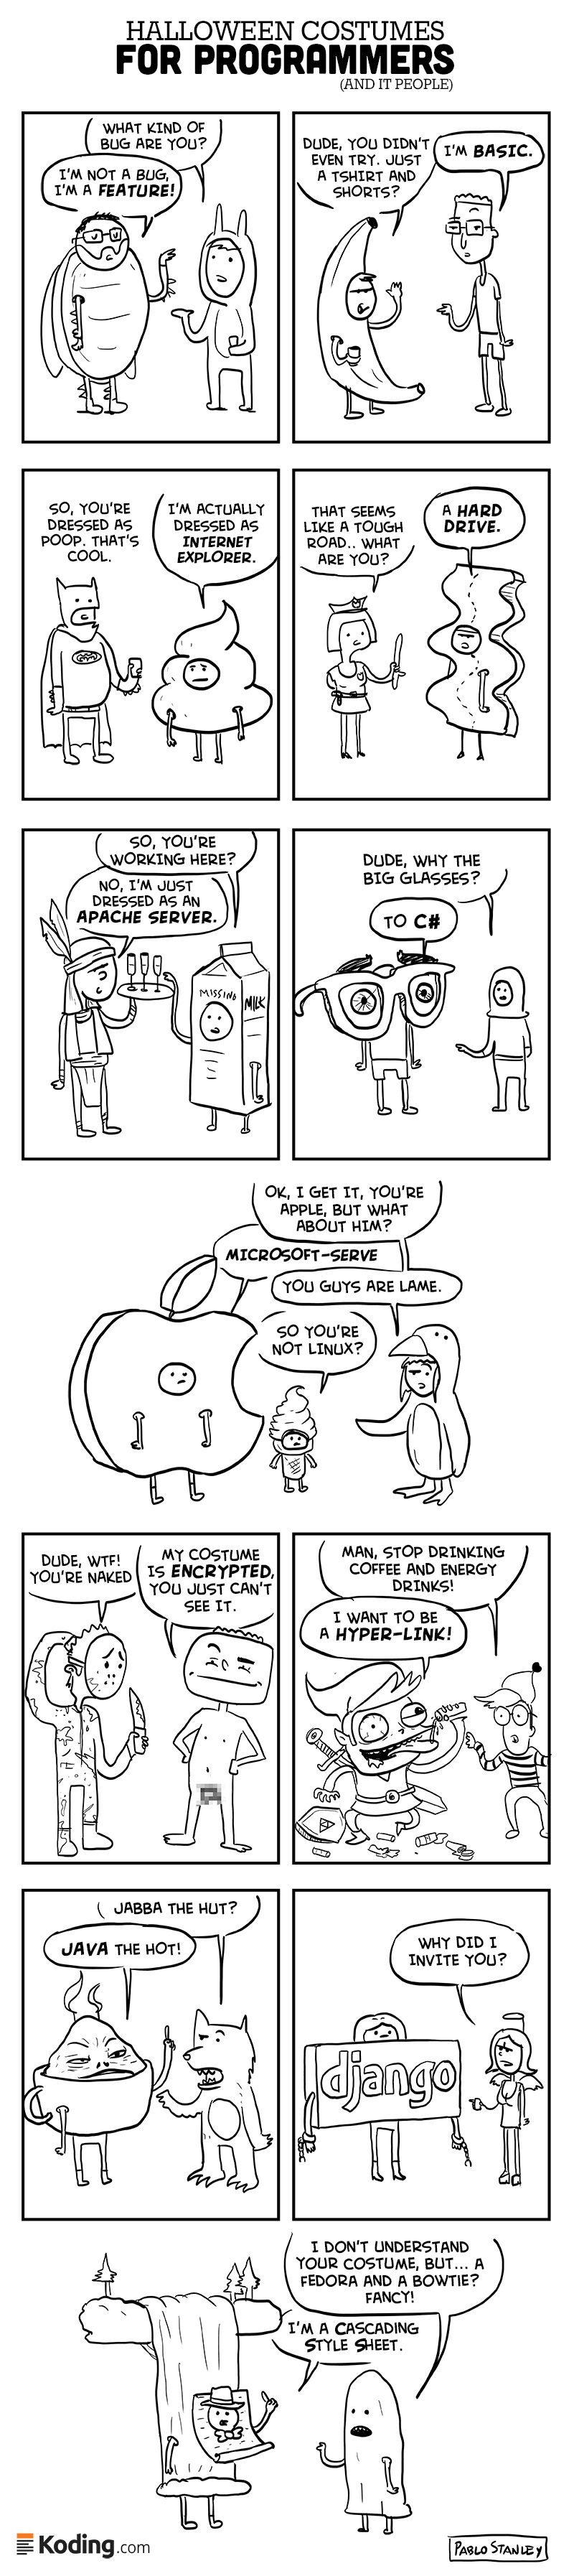 halloween Costumes For Programmers